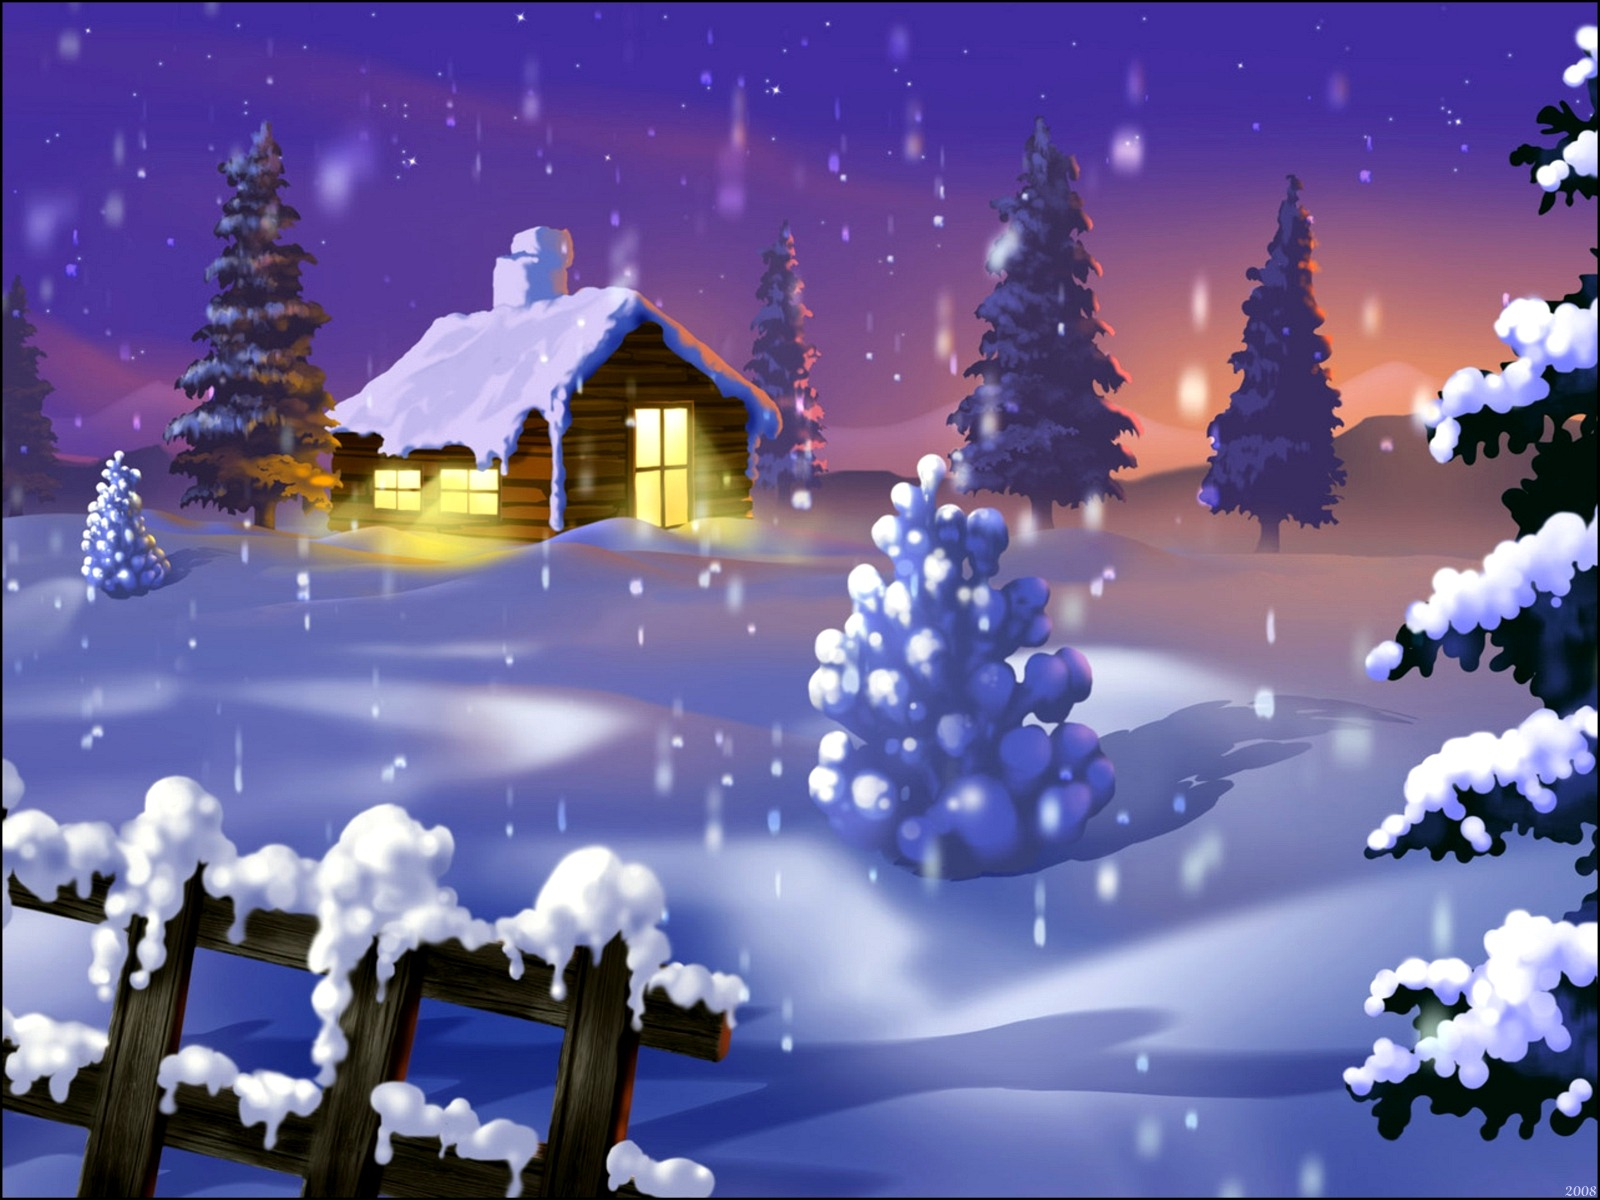 free desktop wallpaper winter desk merry christmas desktop uploaded by 1600x1200